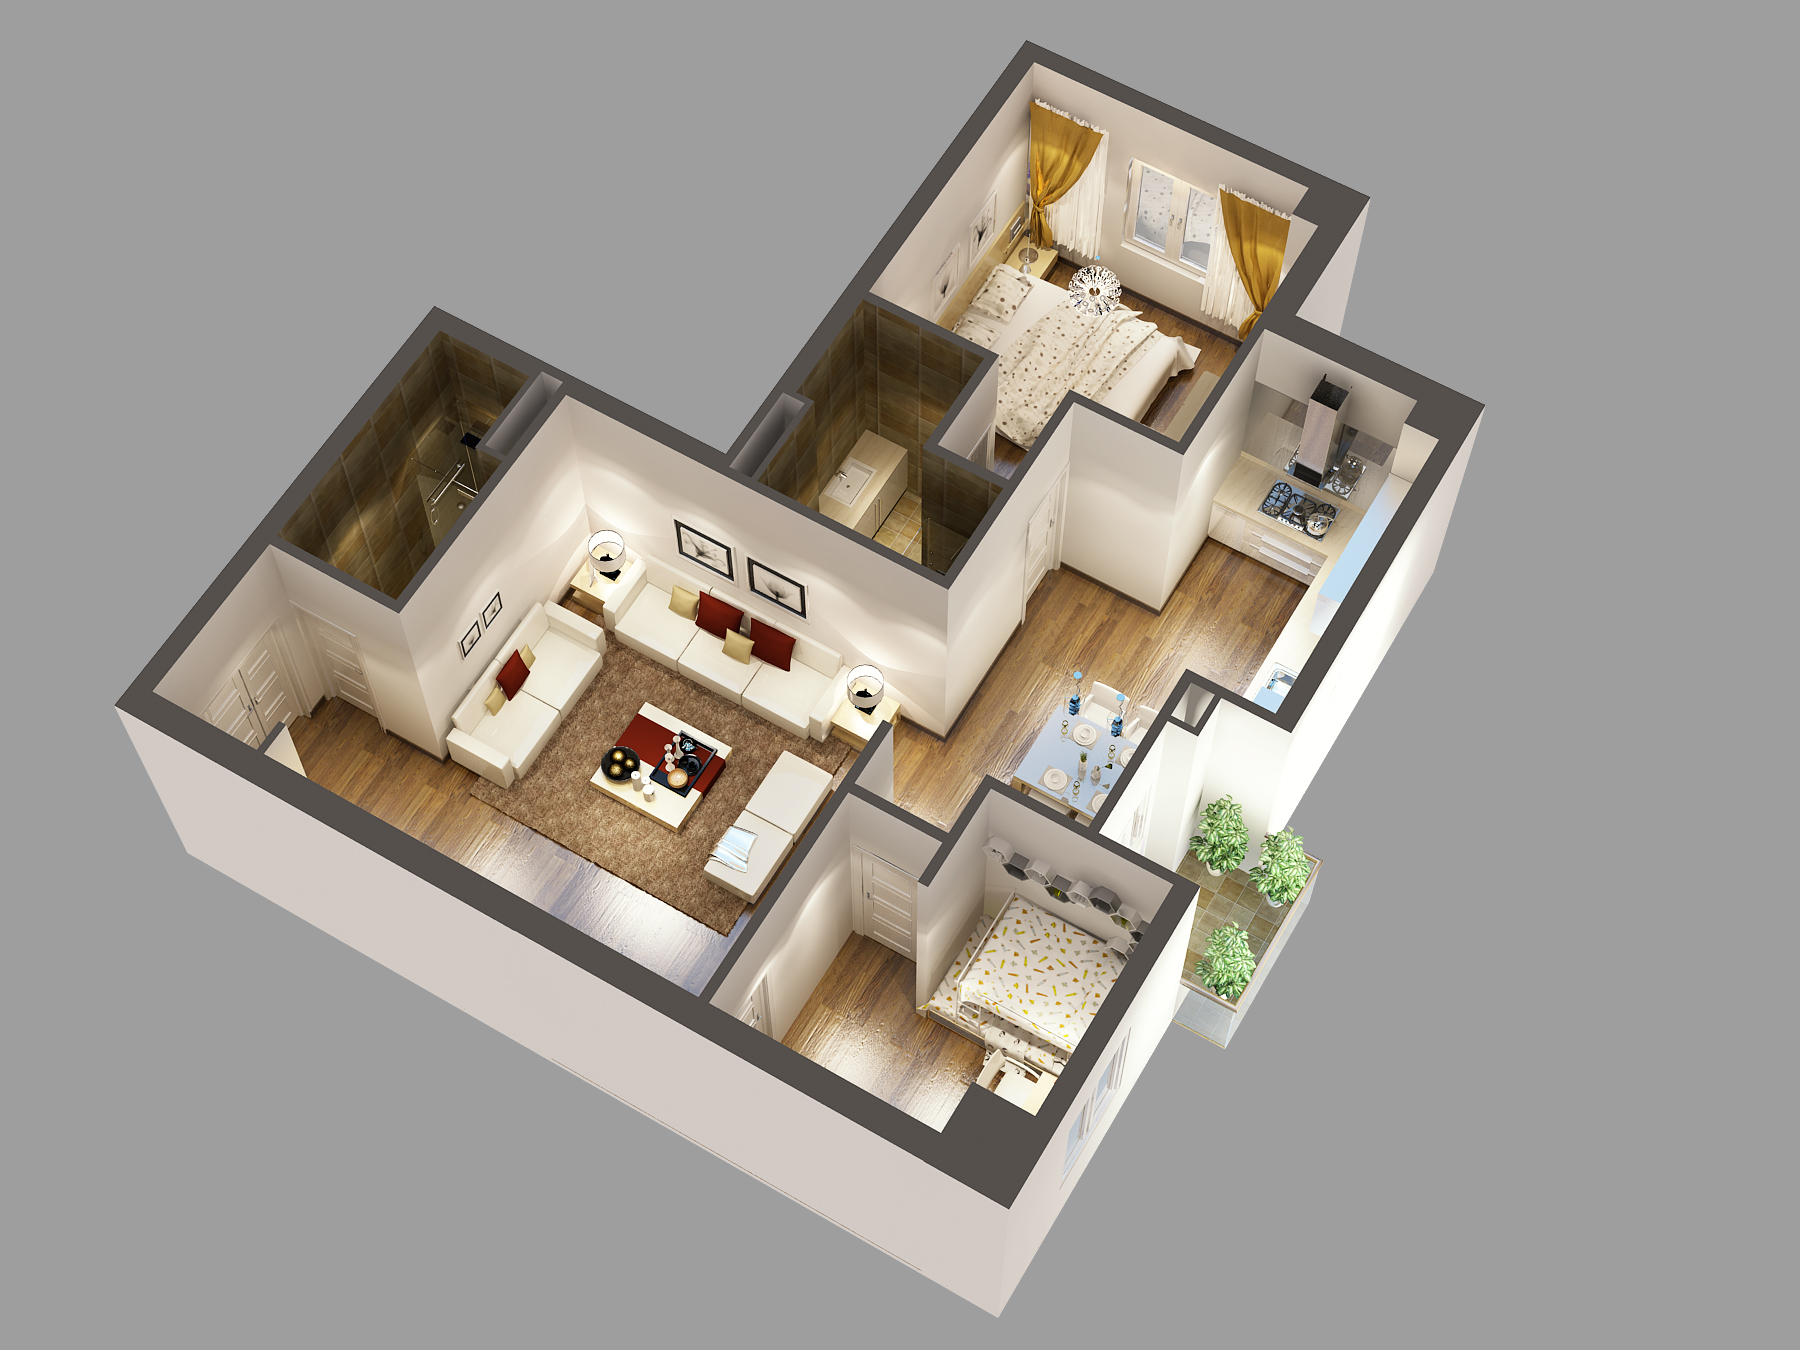 3d model detailed house cutaway 87086kb jpg by acdcz - House Model 3d